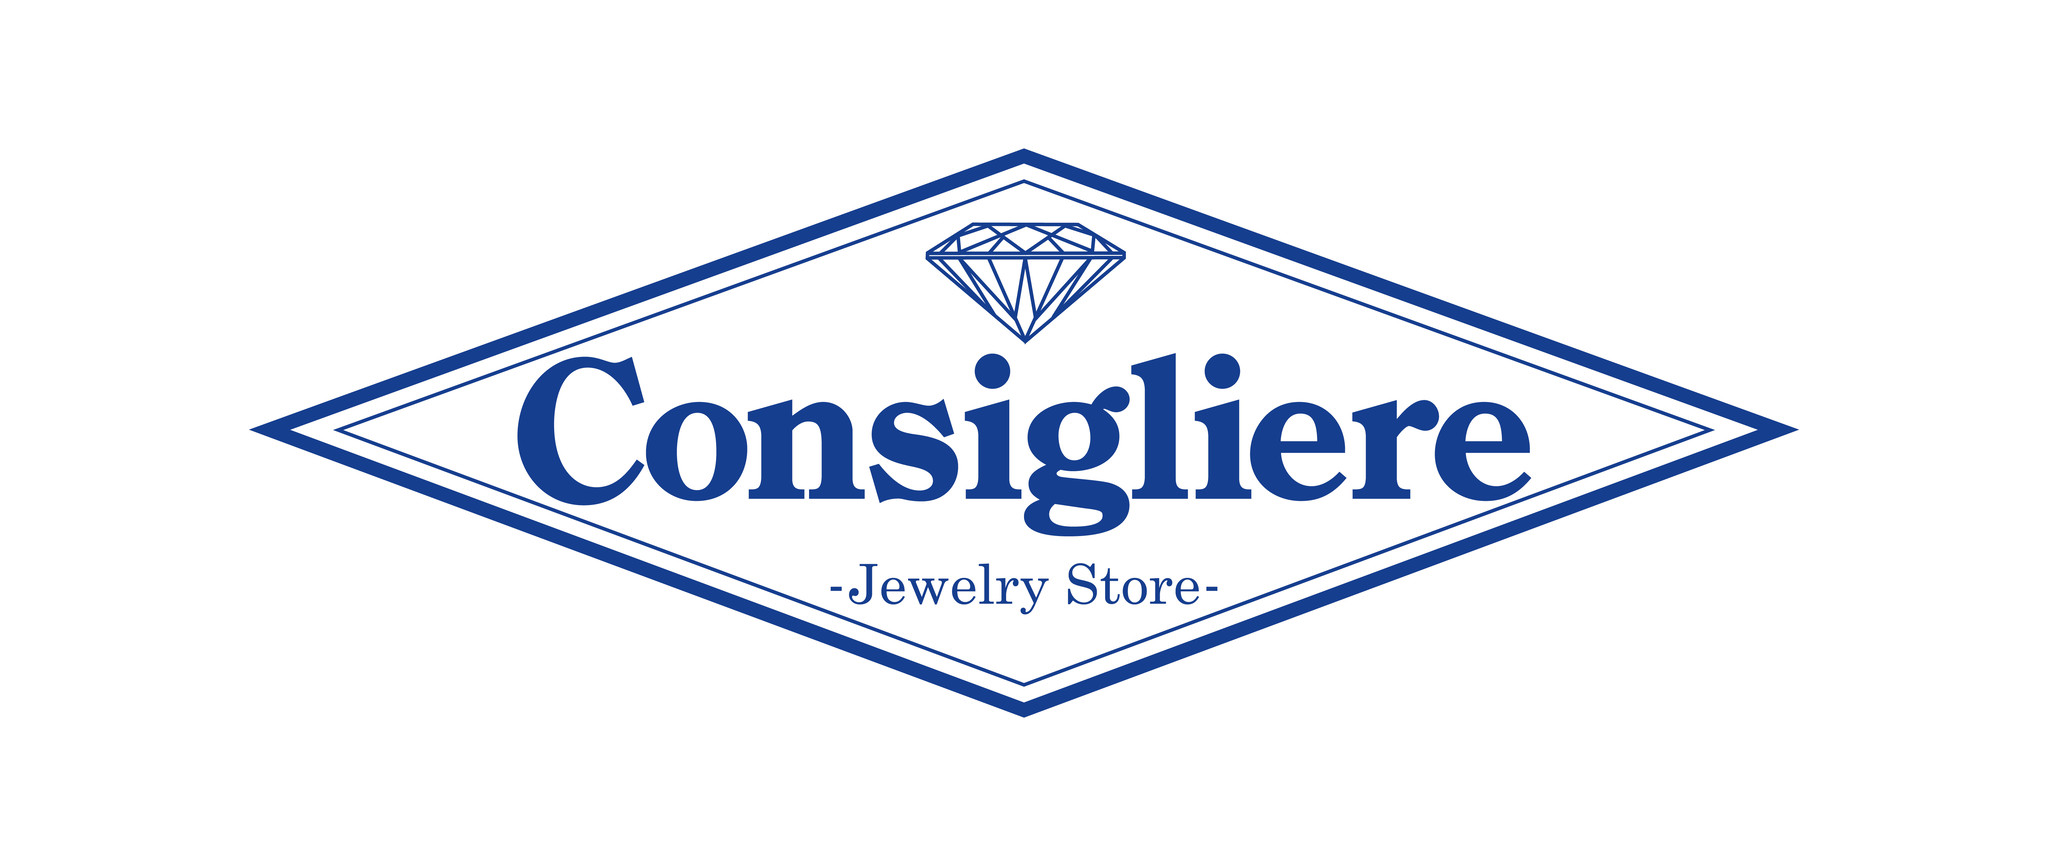 Consigliere Jewelry Store/コンシリエーレジュエリーストア